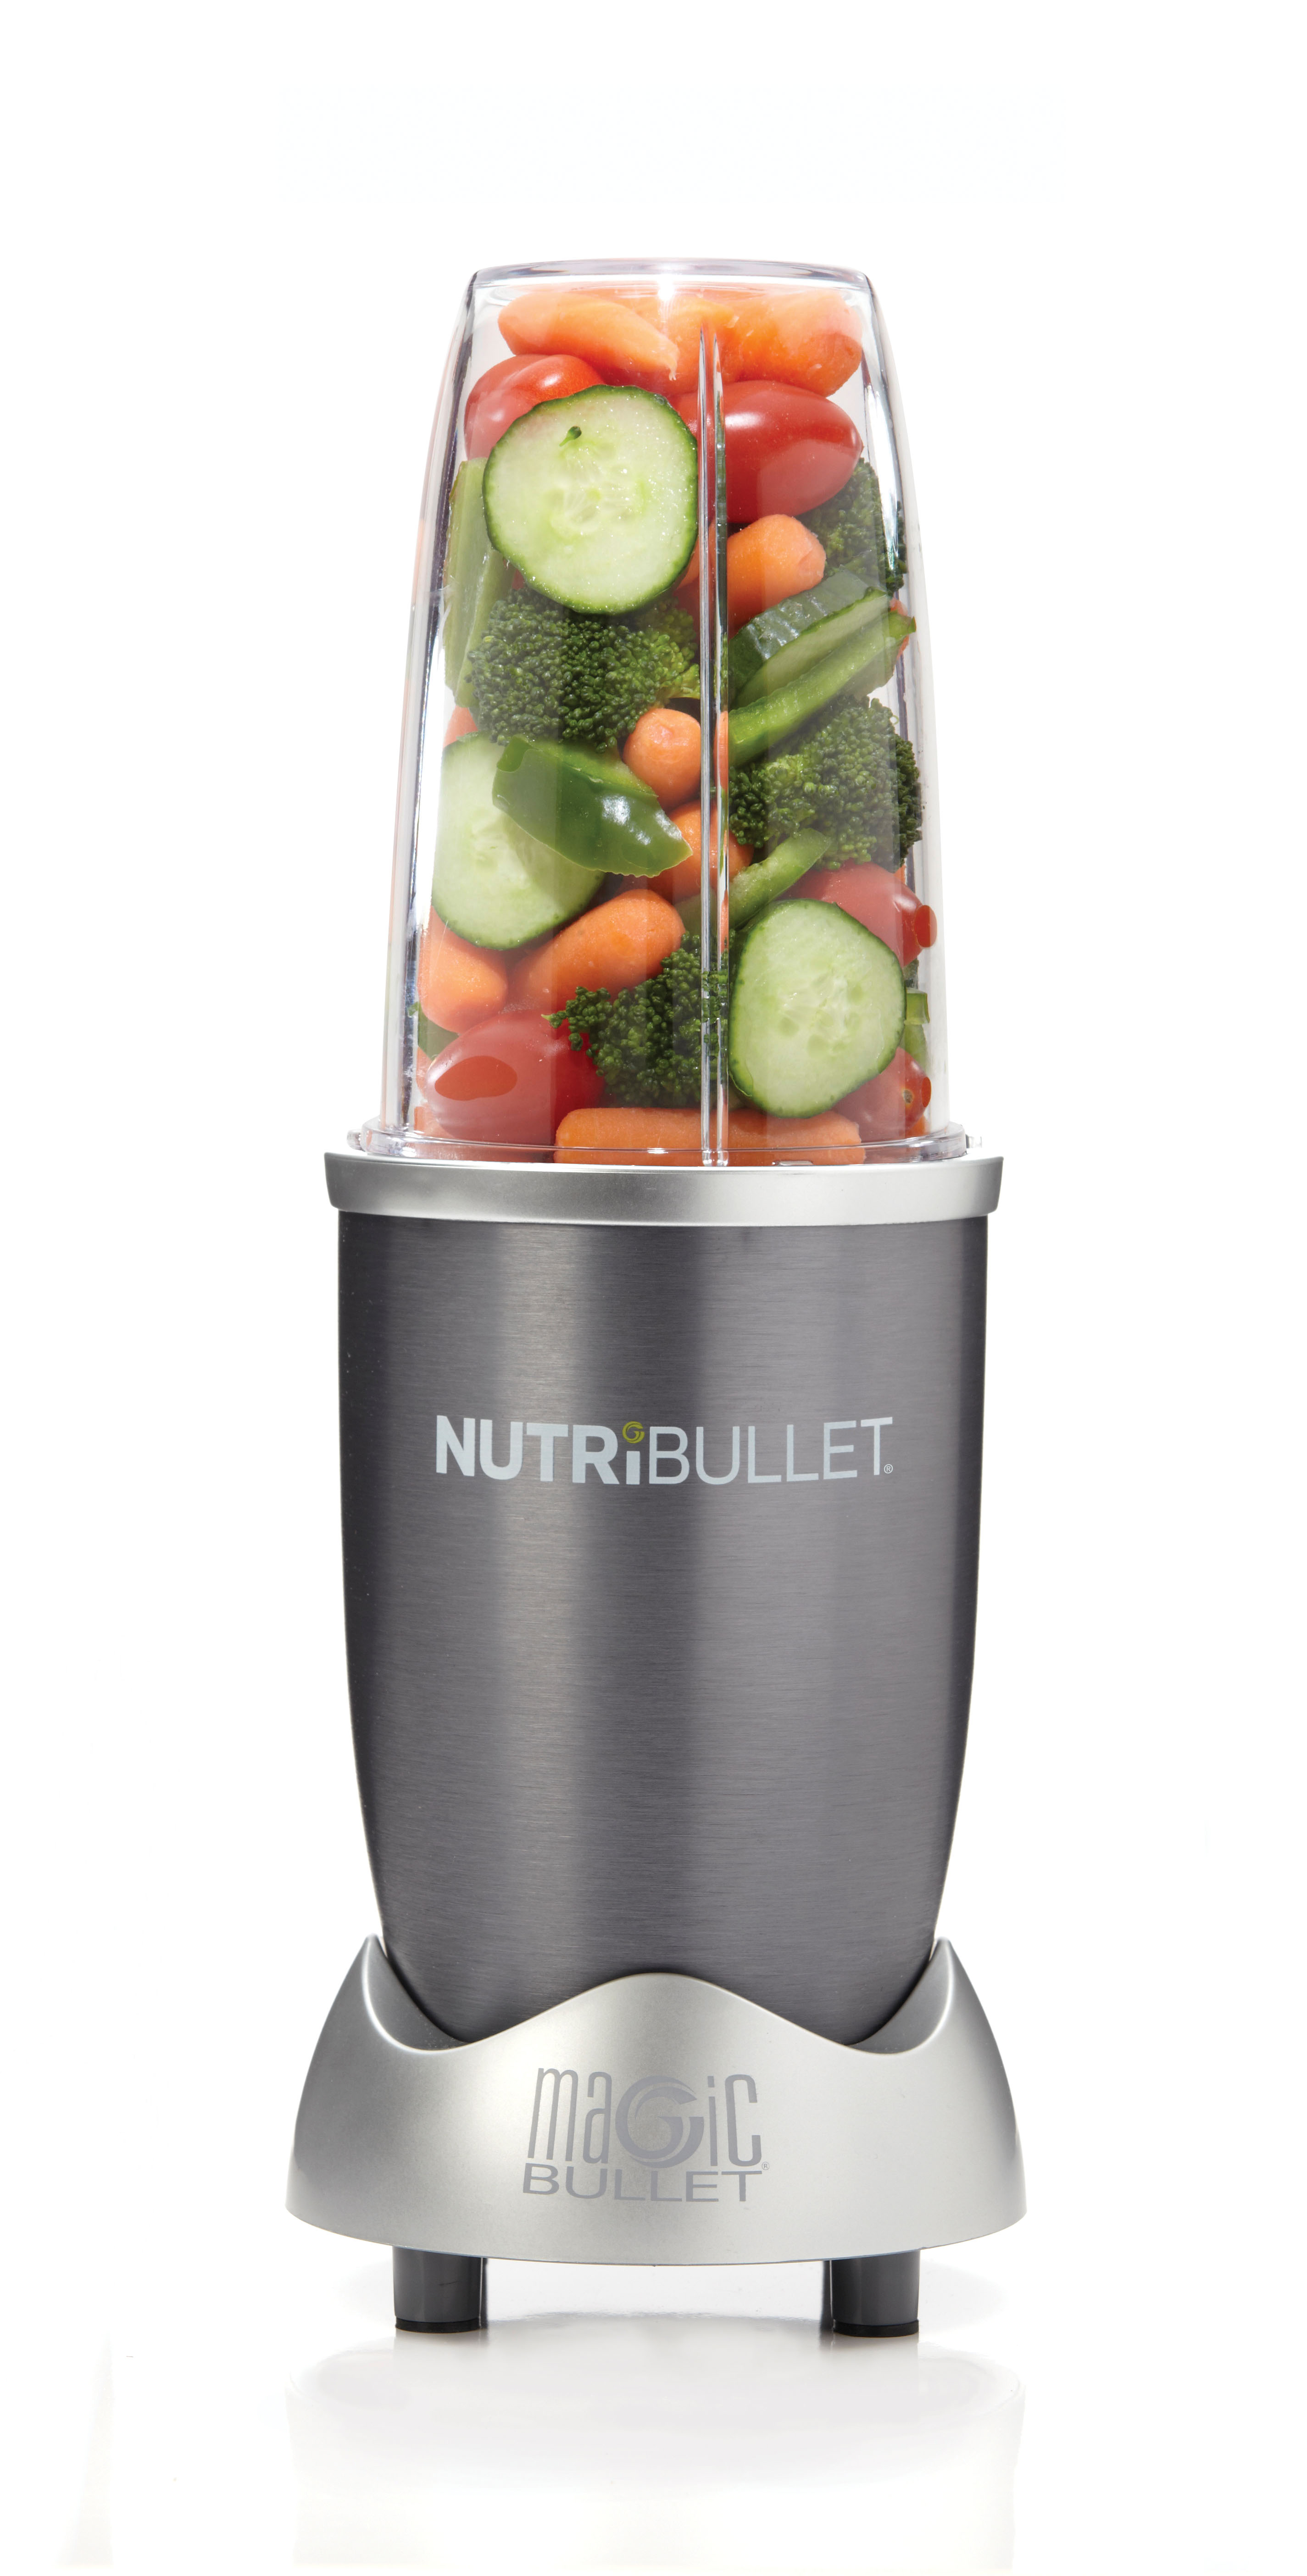 NutriBullet… A Glimpse Into the Future of Nutrition?